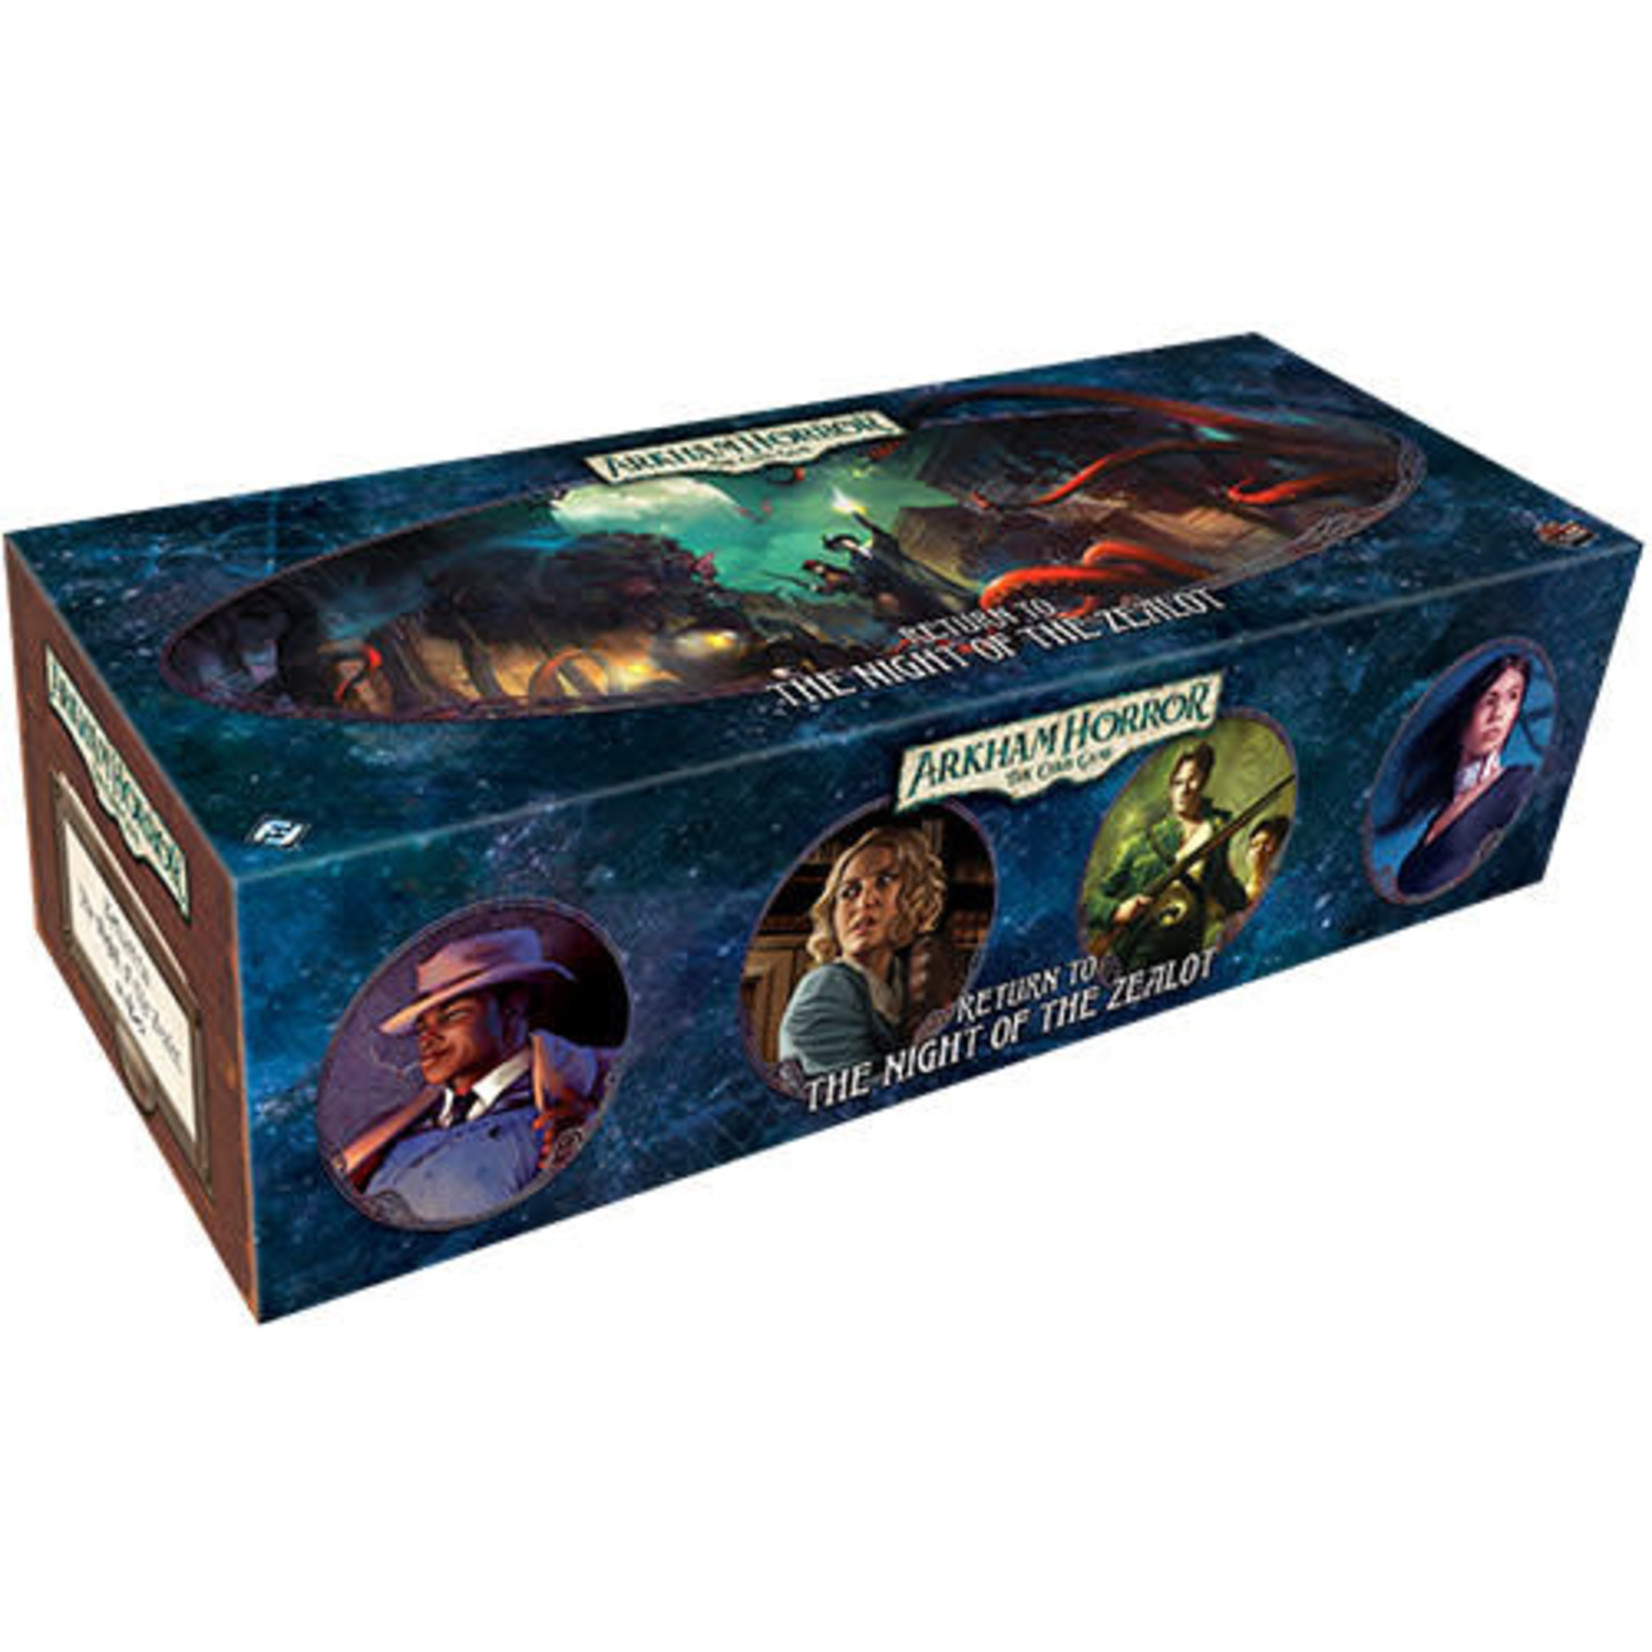 Fantasy Flight Games Arkham Horror The Card Game: Return of the Night of the Zealot Expansion